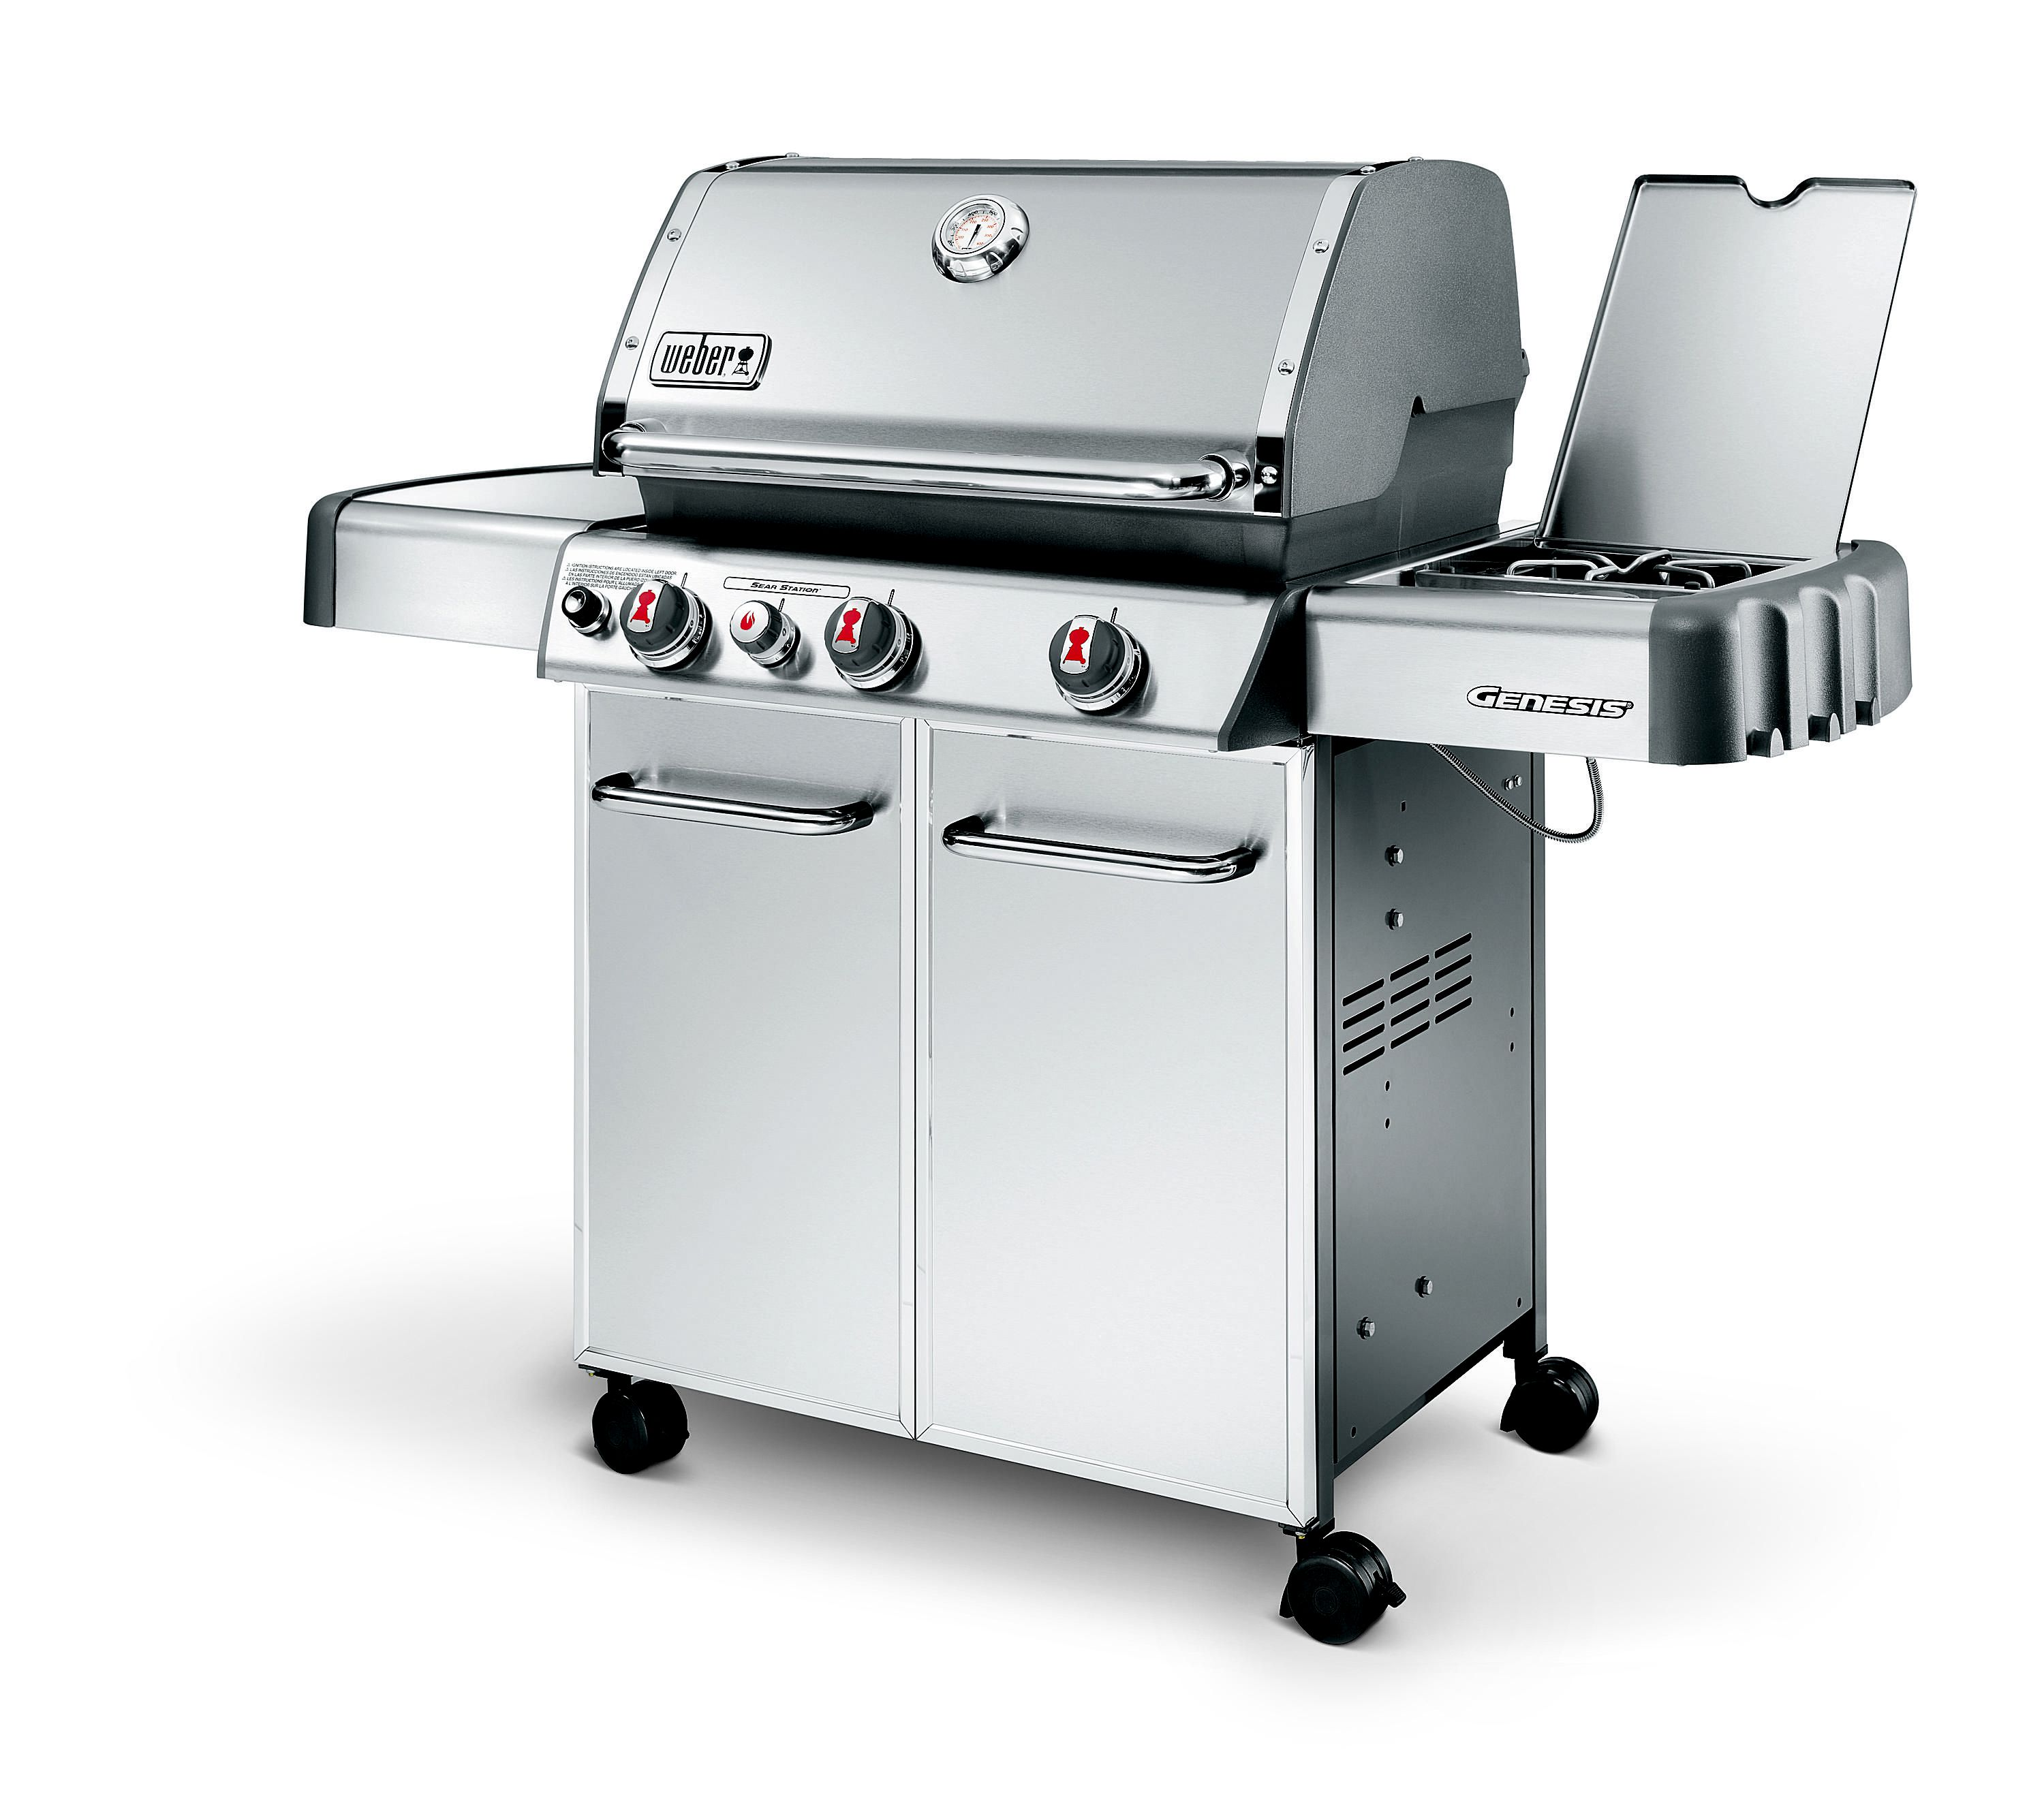 weber genesis s 340 gas grill review. Black Bedroom Furniture Sets. Home Design Ideas